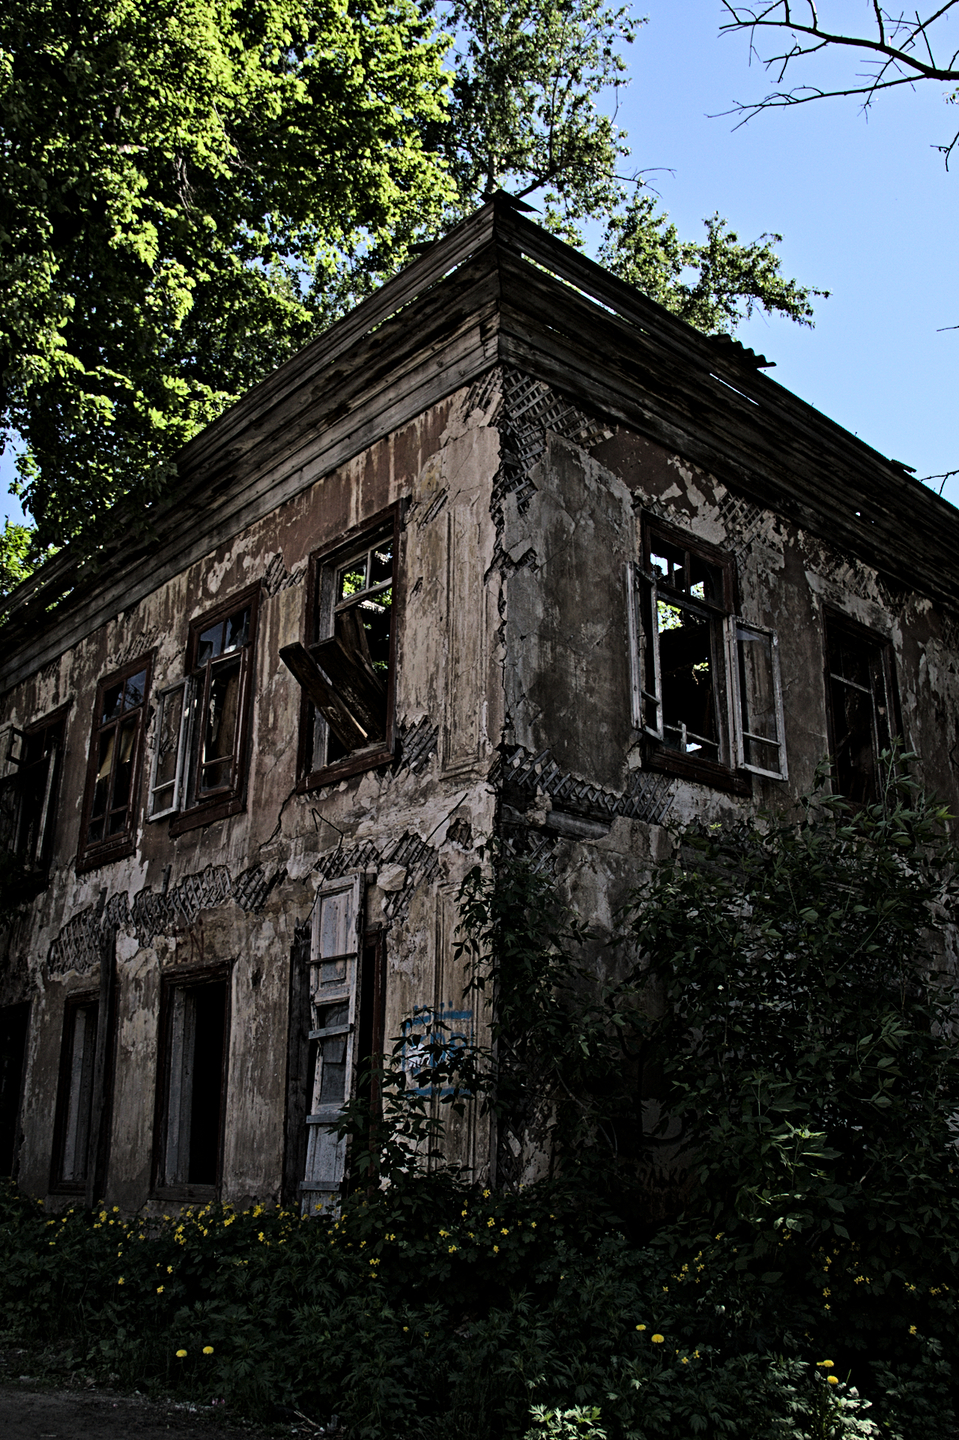 Deserted old house  | city, deserted, house, sky, sunny day, tree, green, flowers, old, summer